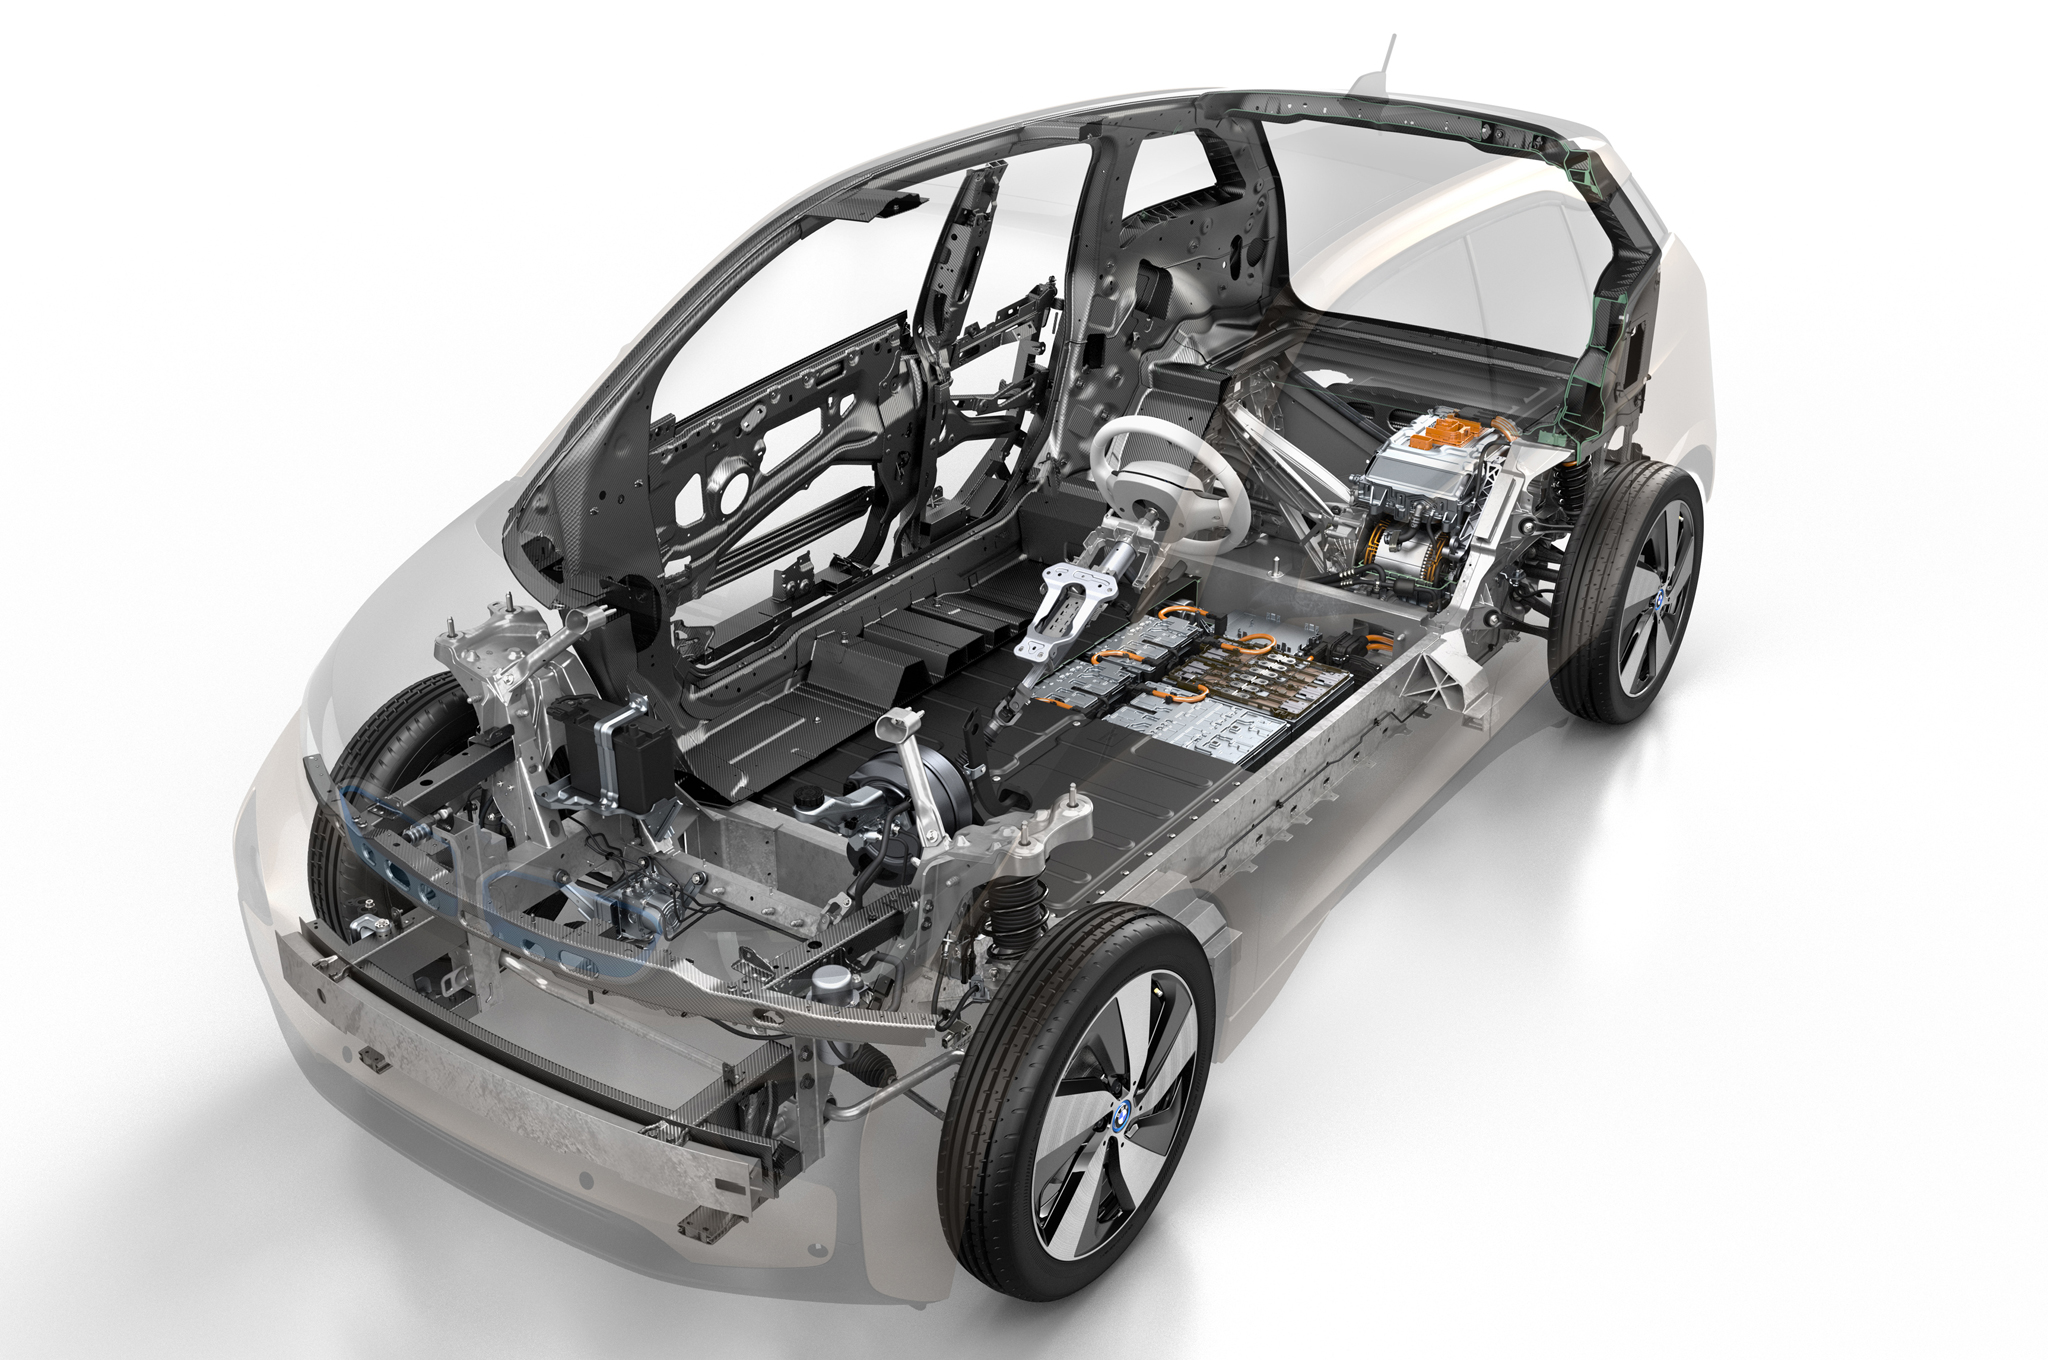 New Details on BMW i3 Reveal 0-60 MPH Time, Tech